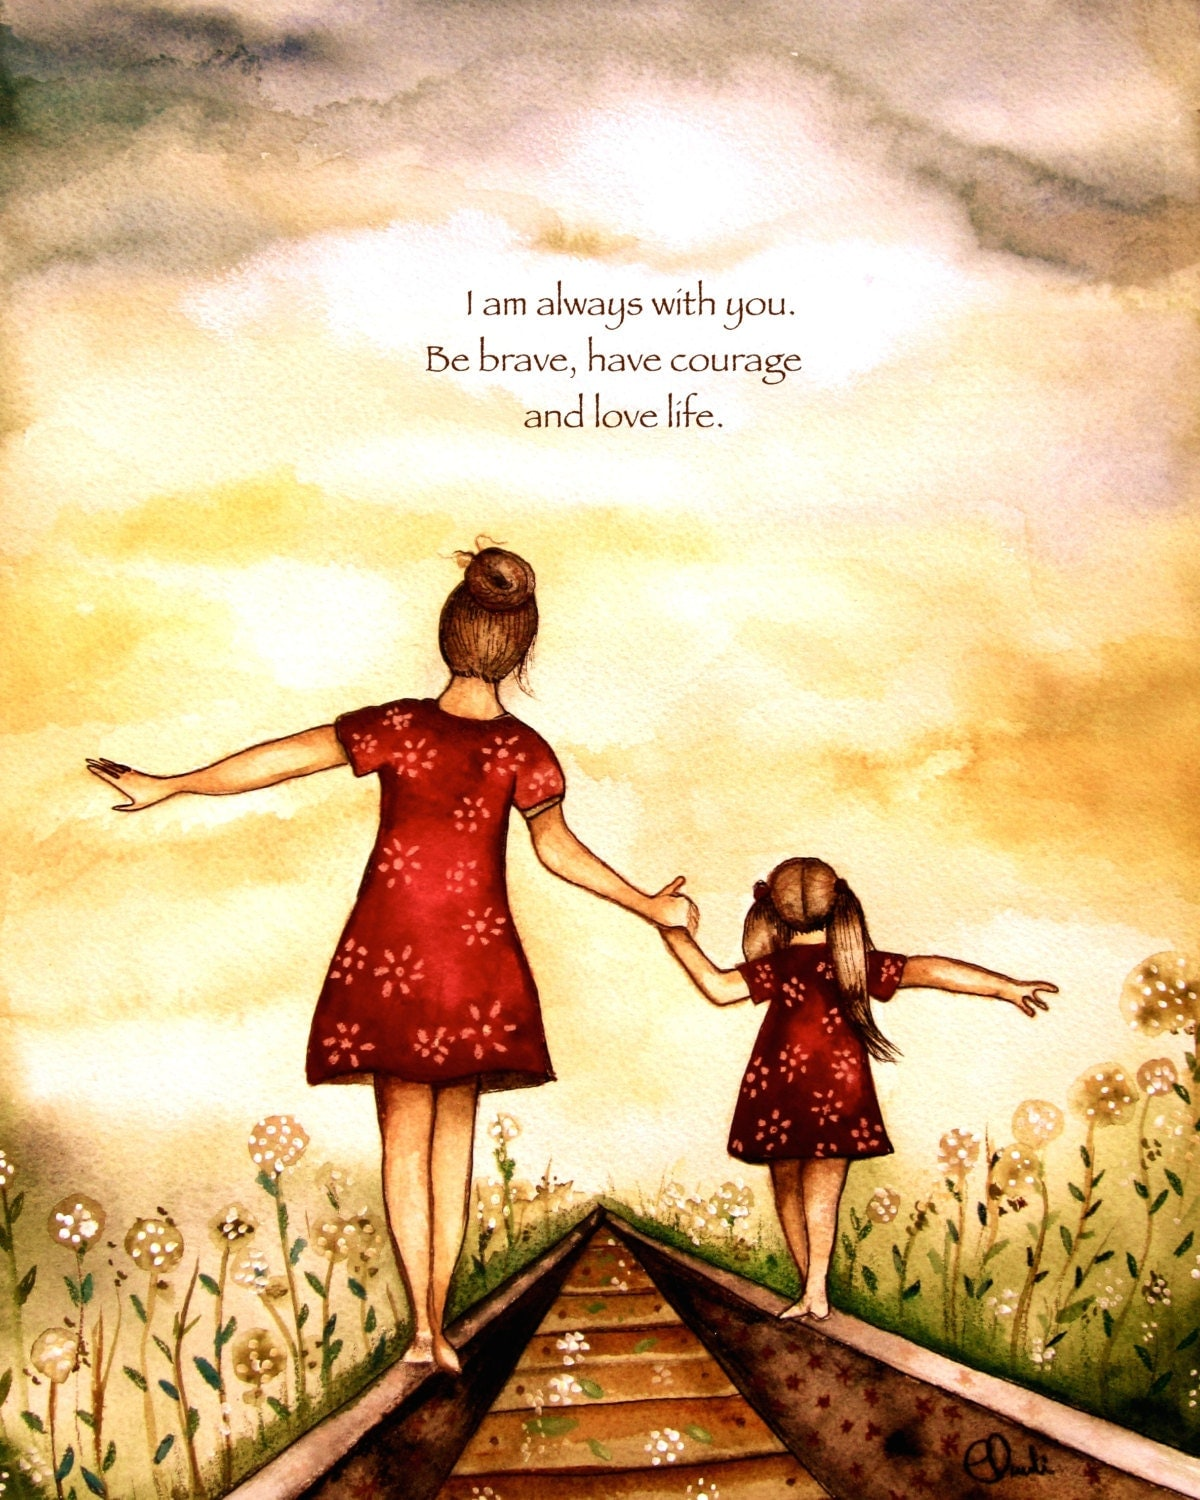 Mother Daughter Love Quotes Mother And Daughter Our Path Art Print Gift Idea Mother's Day